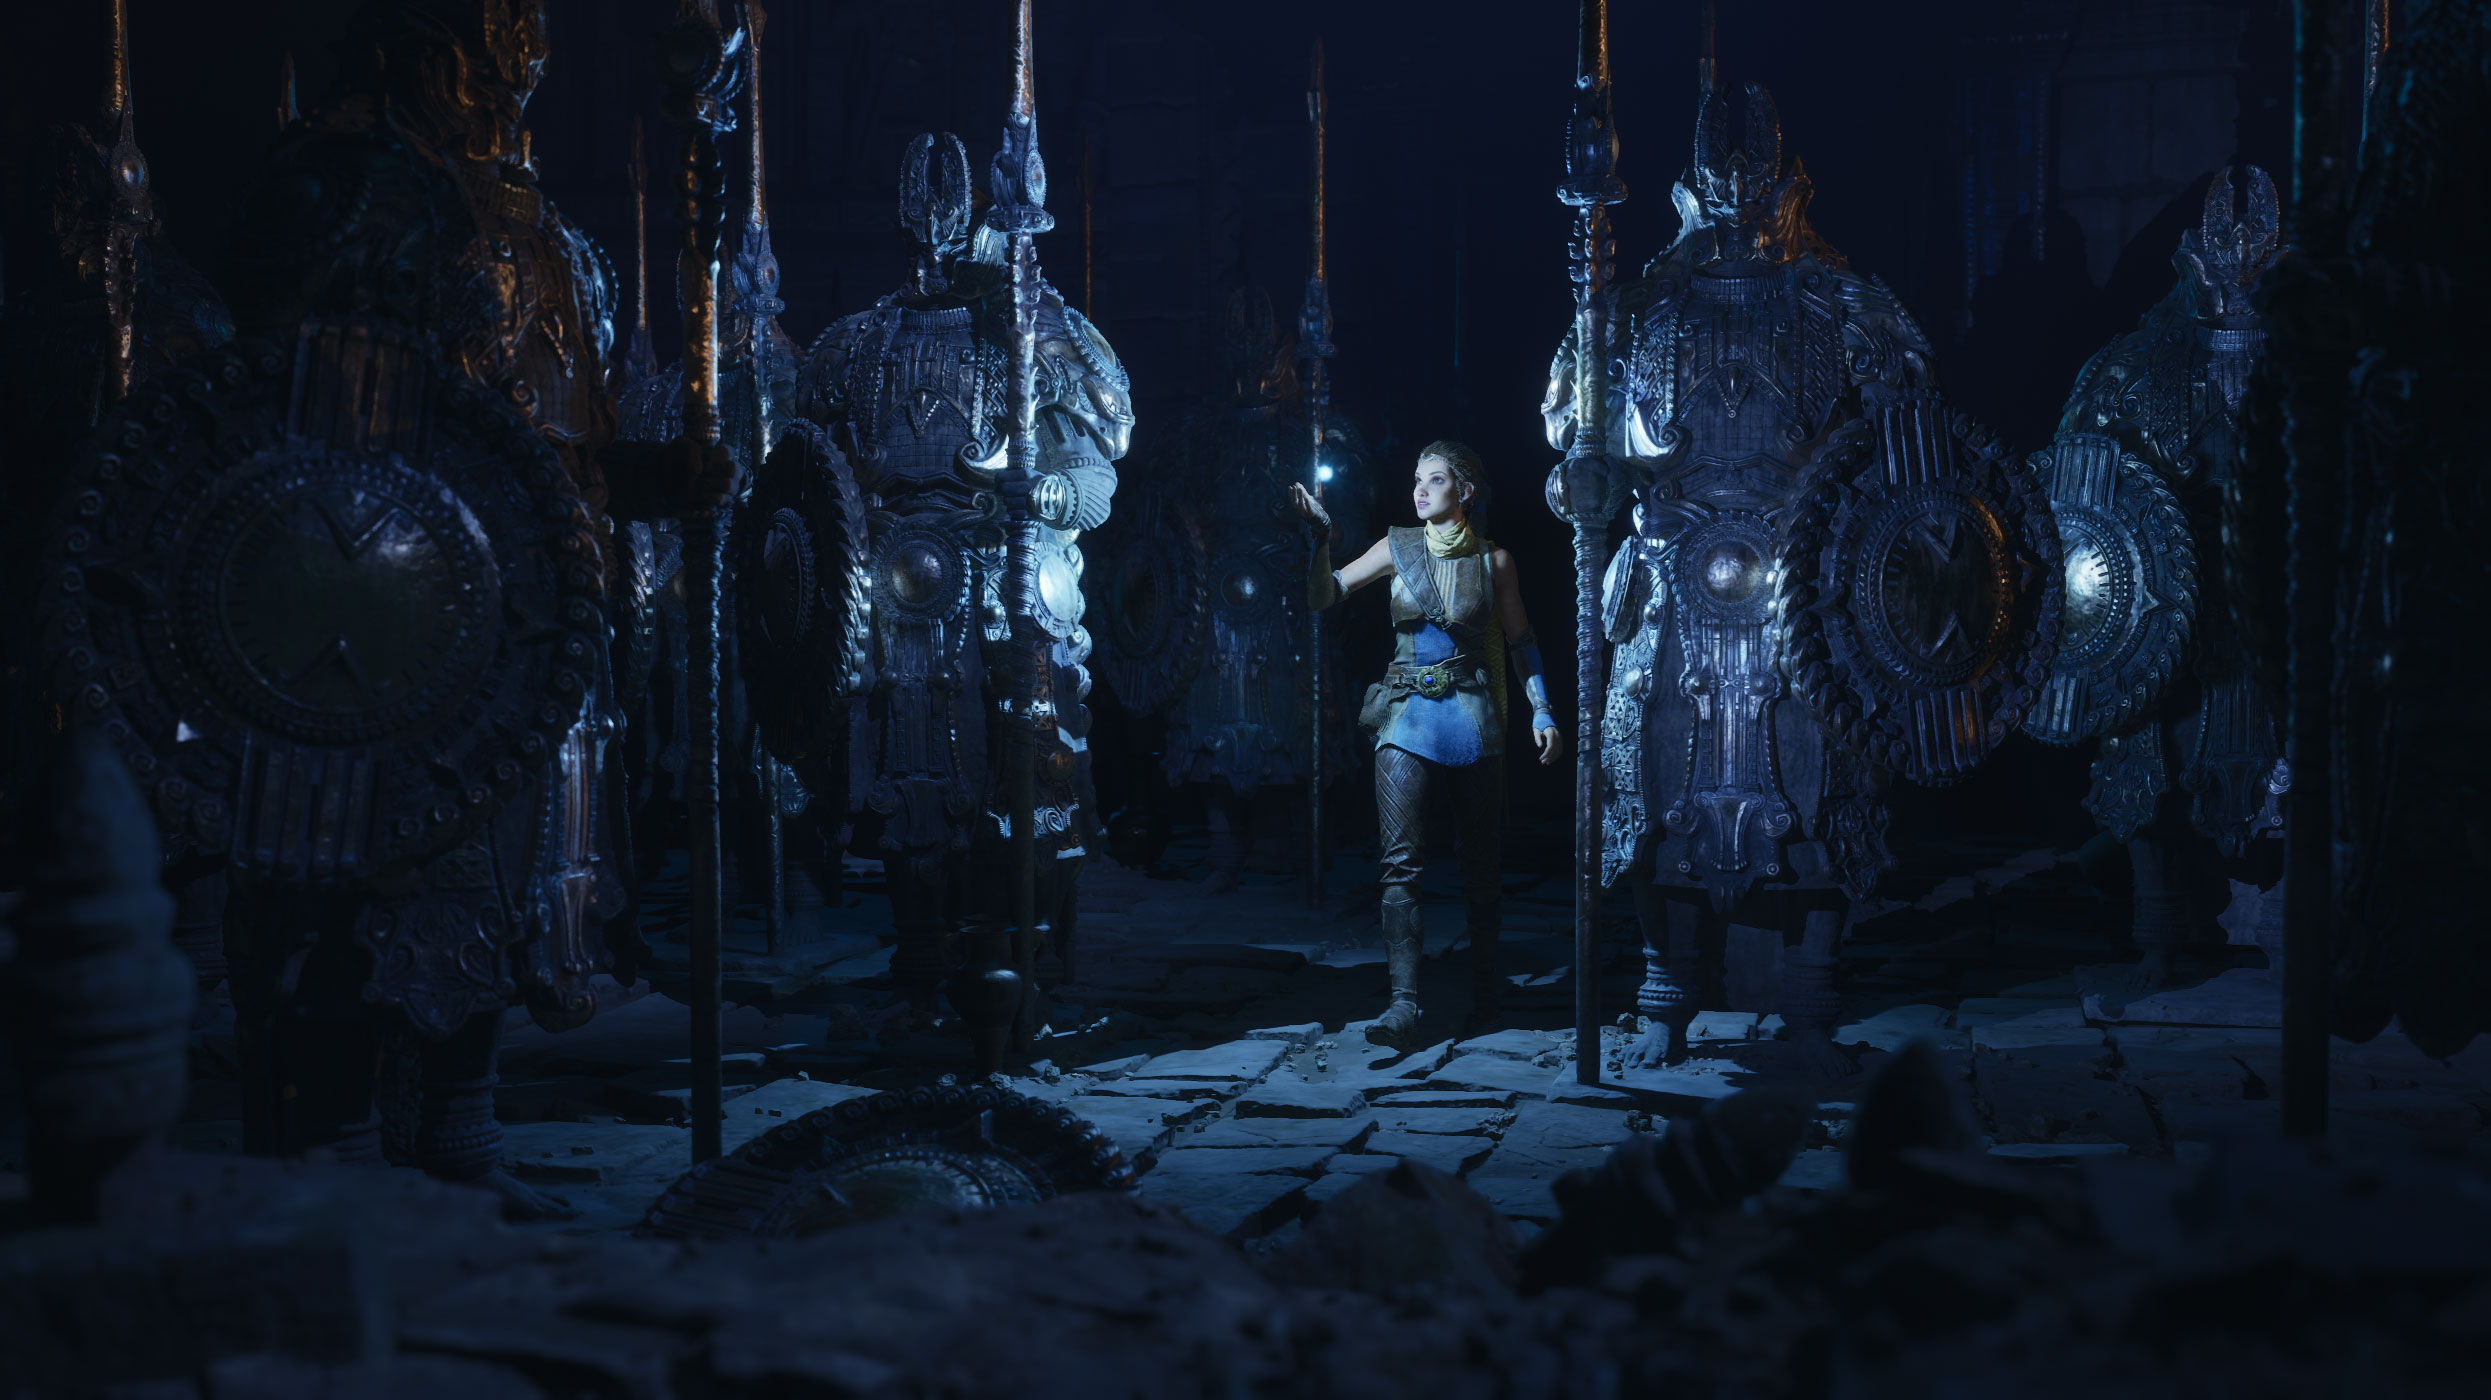 Epic Games has announced a new engine - Unreal Engine 5 3